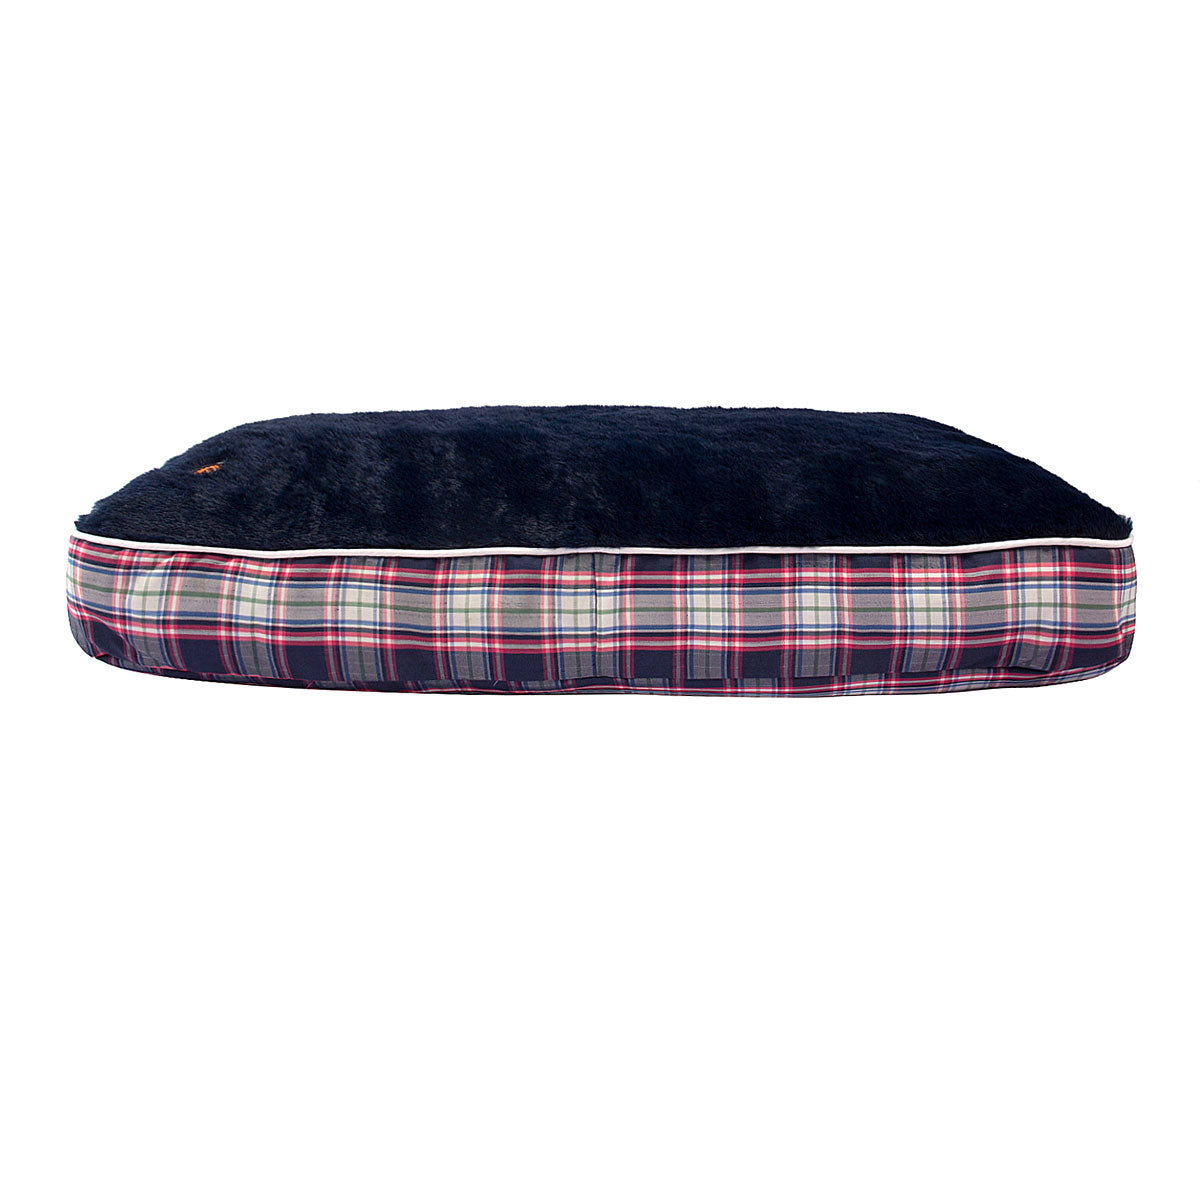 Halo Amber Plaid Rectangular Dog Bed_2787